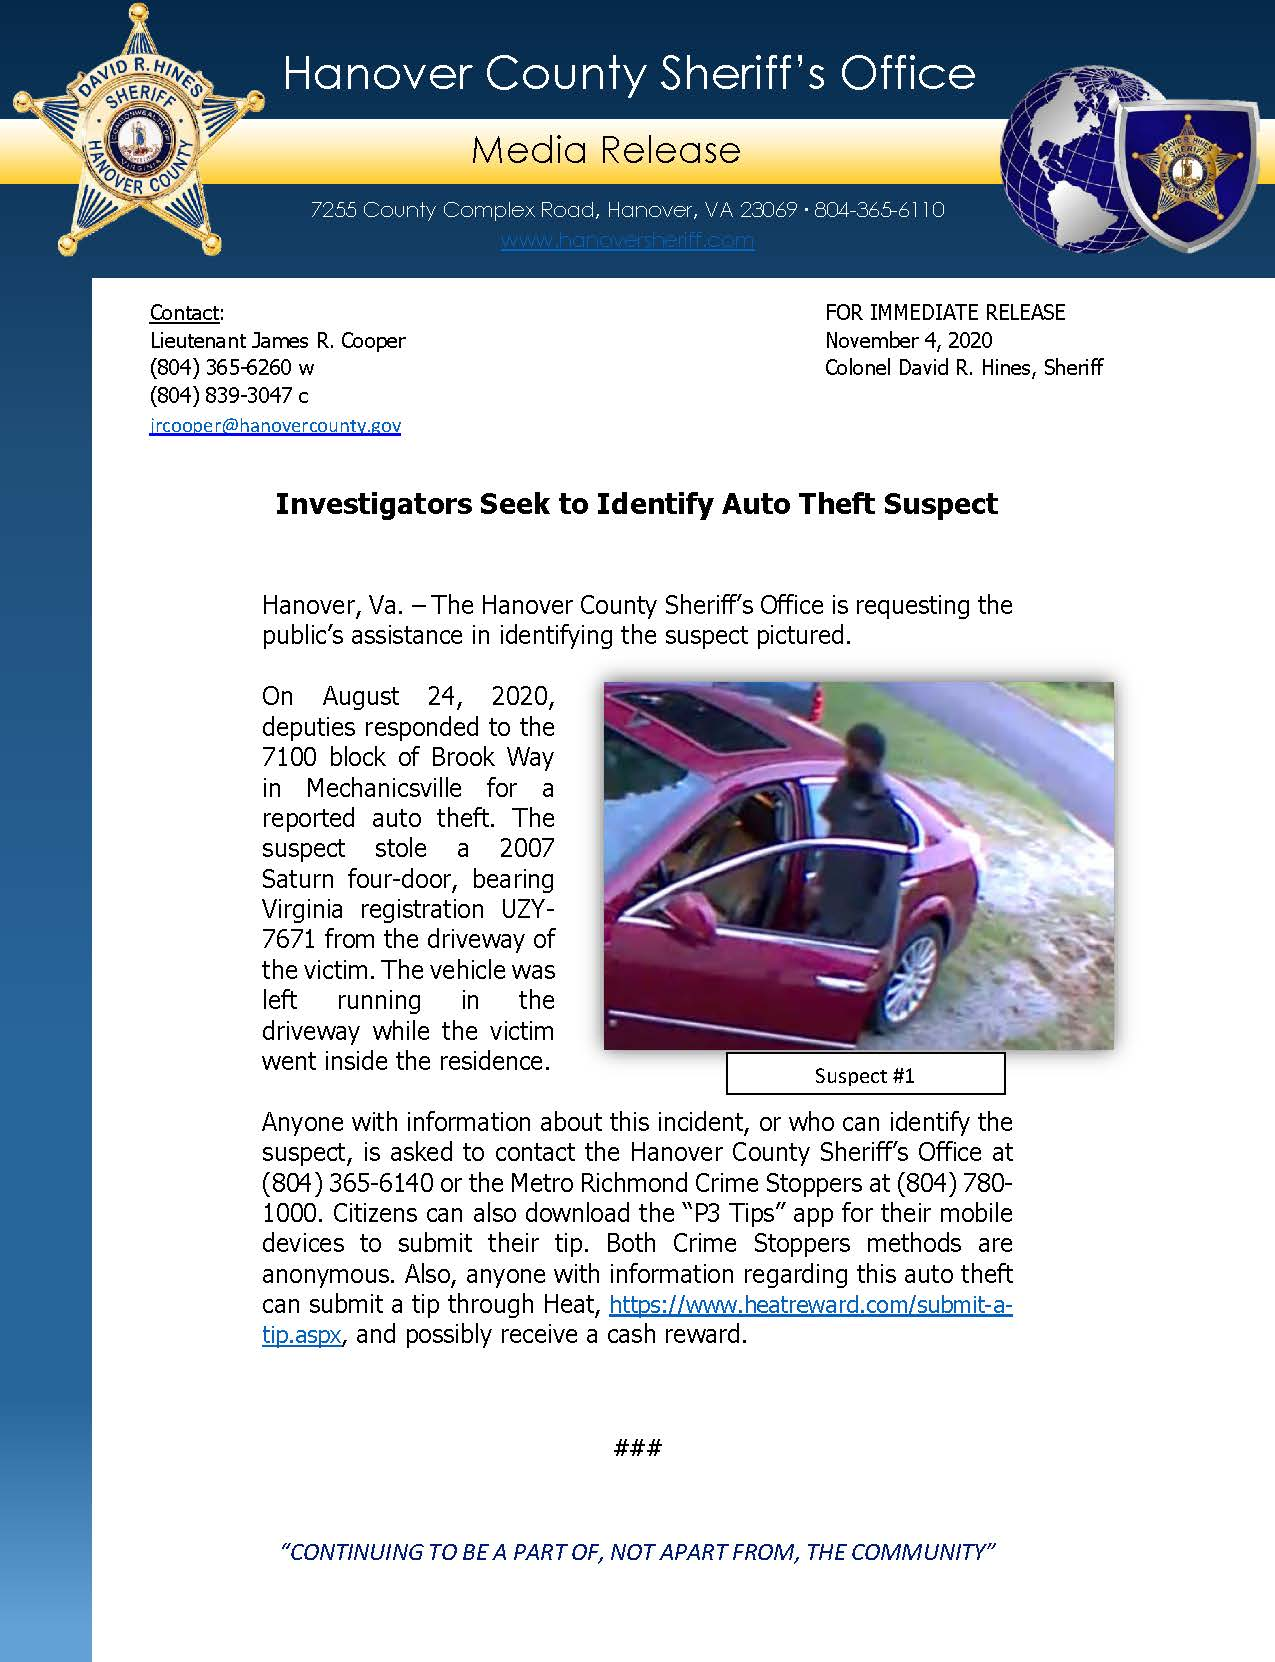 HCSO Media Release - Investigators Seek to Identify Auto Theft Suspect_11.4.20